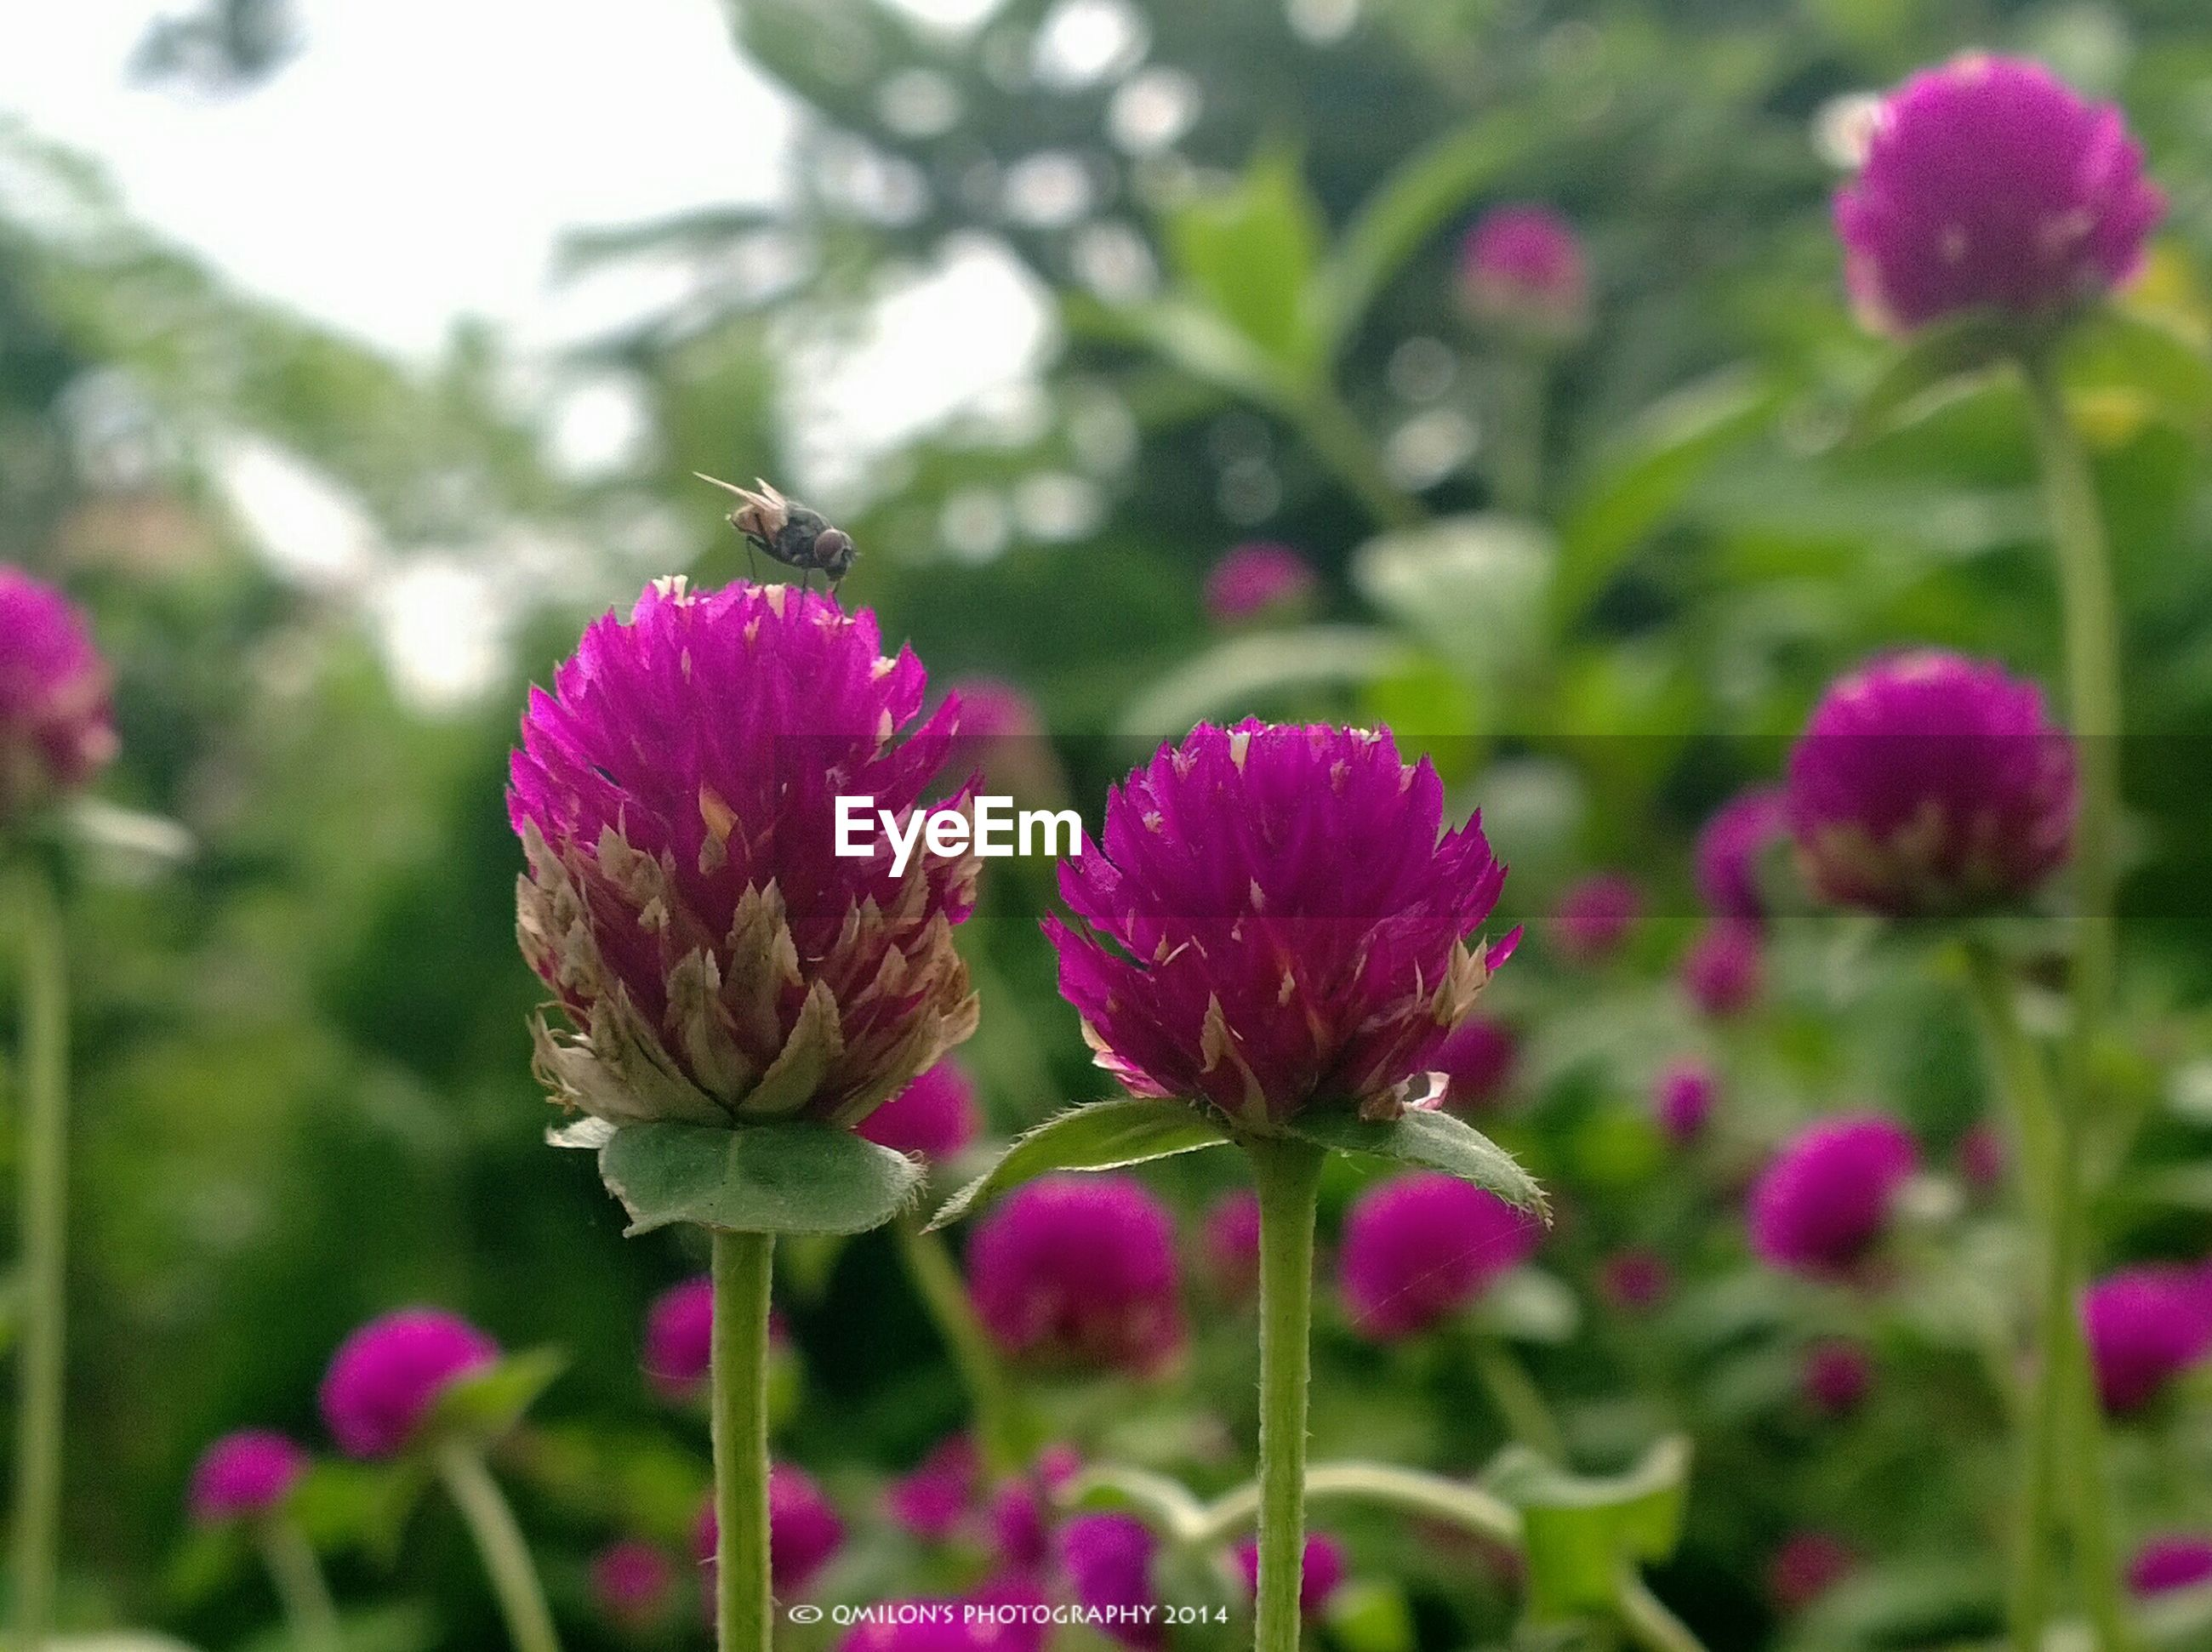 flower, freshness, growth, fragility, focus on foreground, pink color, beauty in nature, close-up, petal, plant, flower head, nature, stem, blooming, purple, bud, selective focus, in bloom, outdoors, day